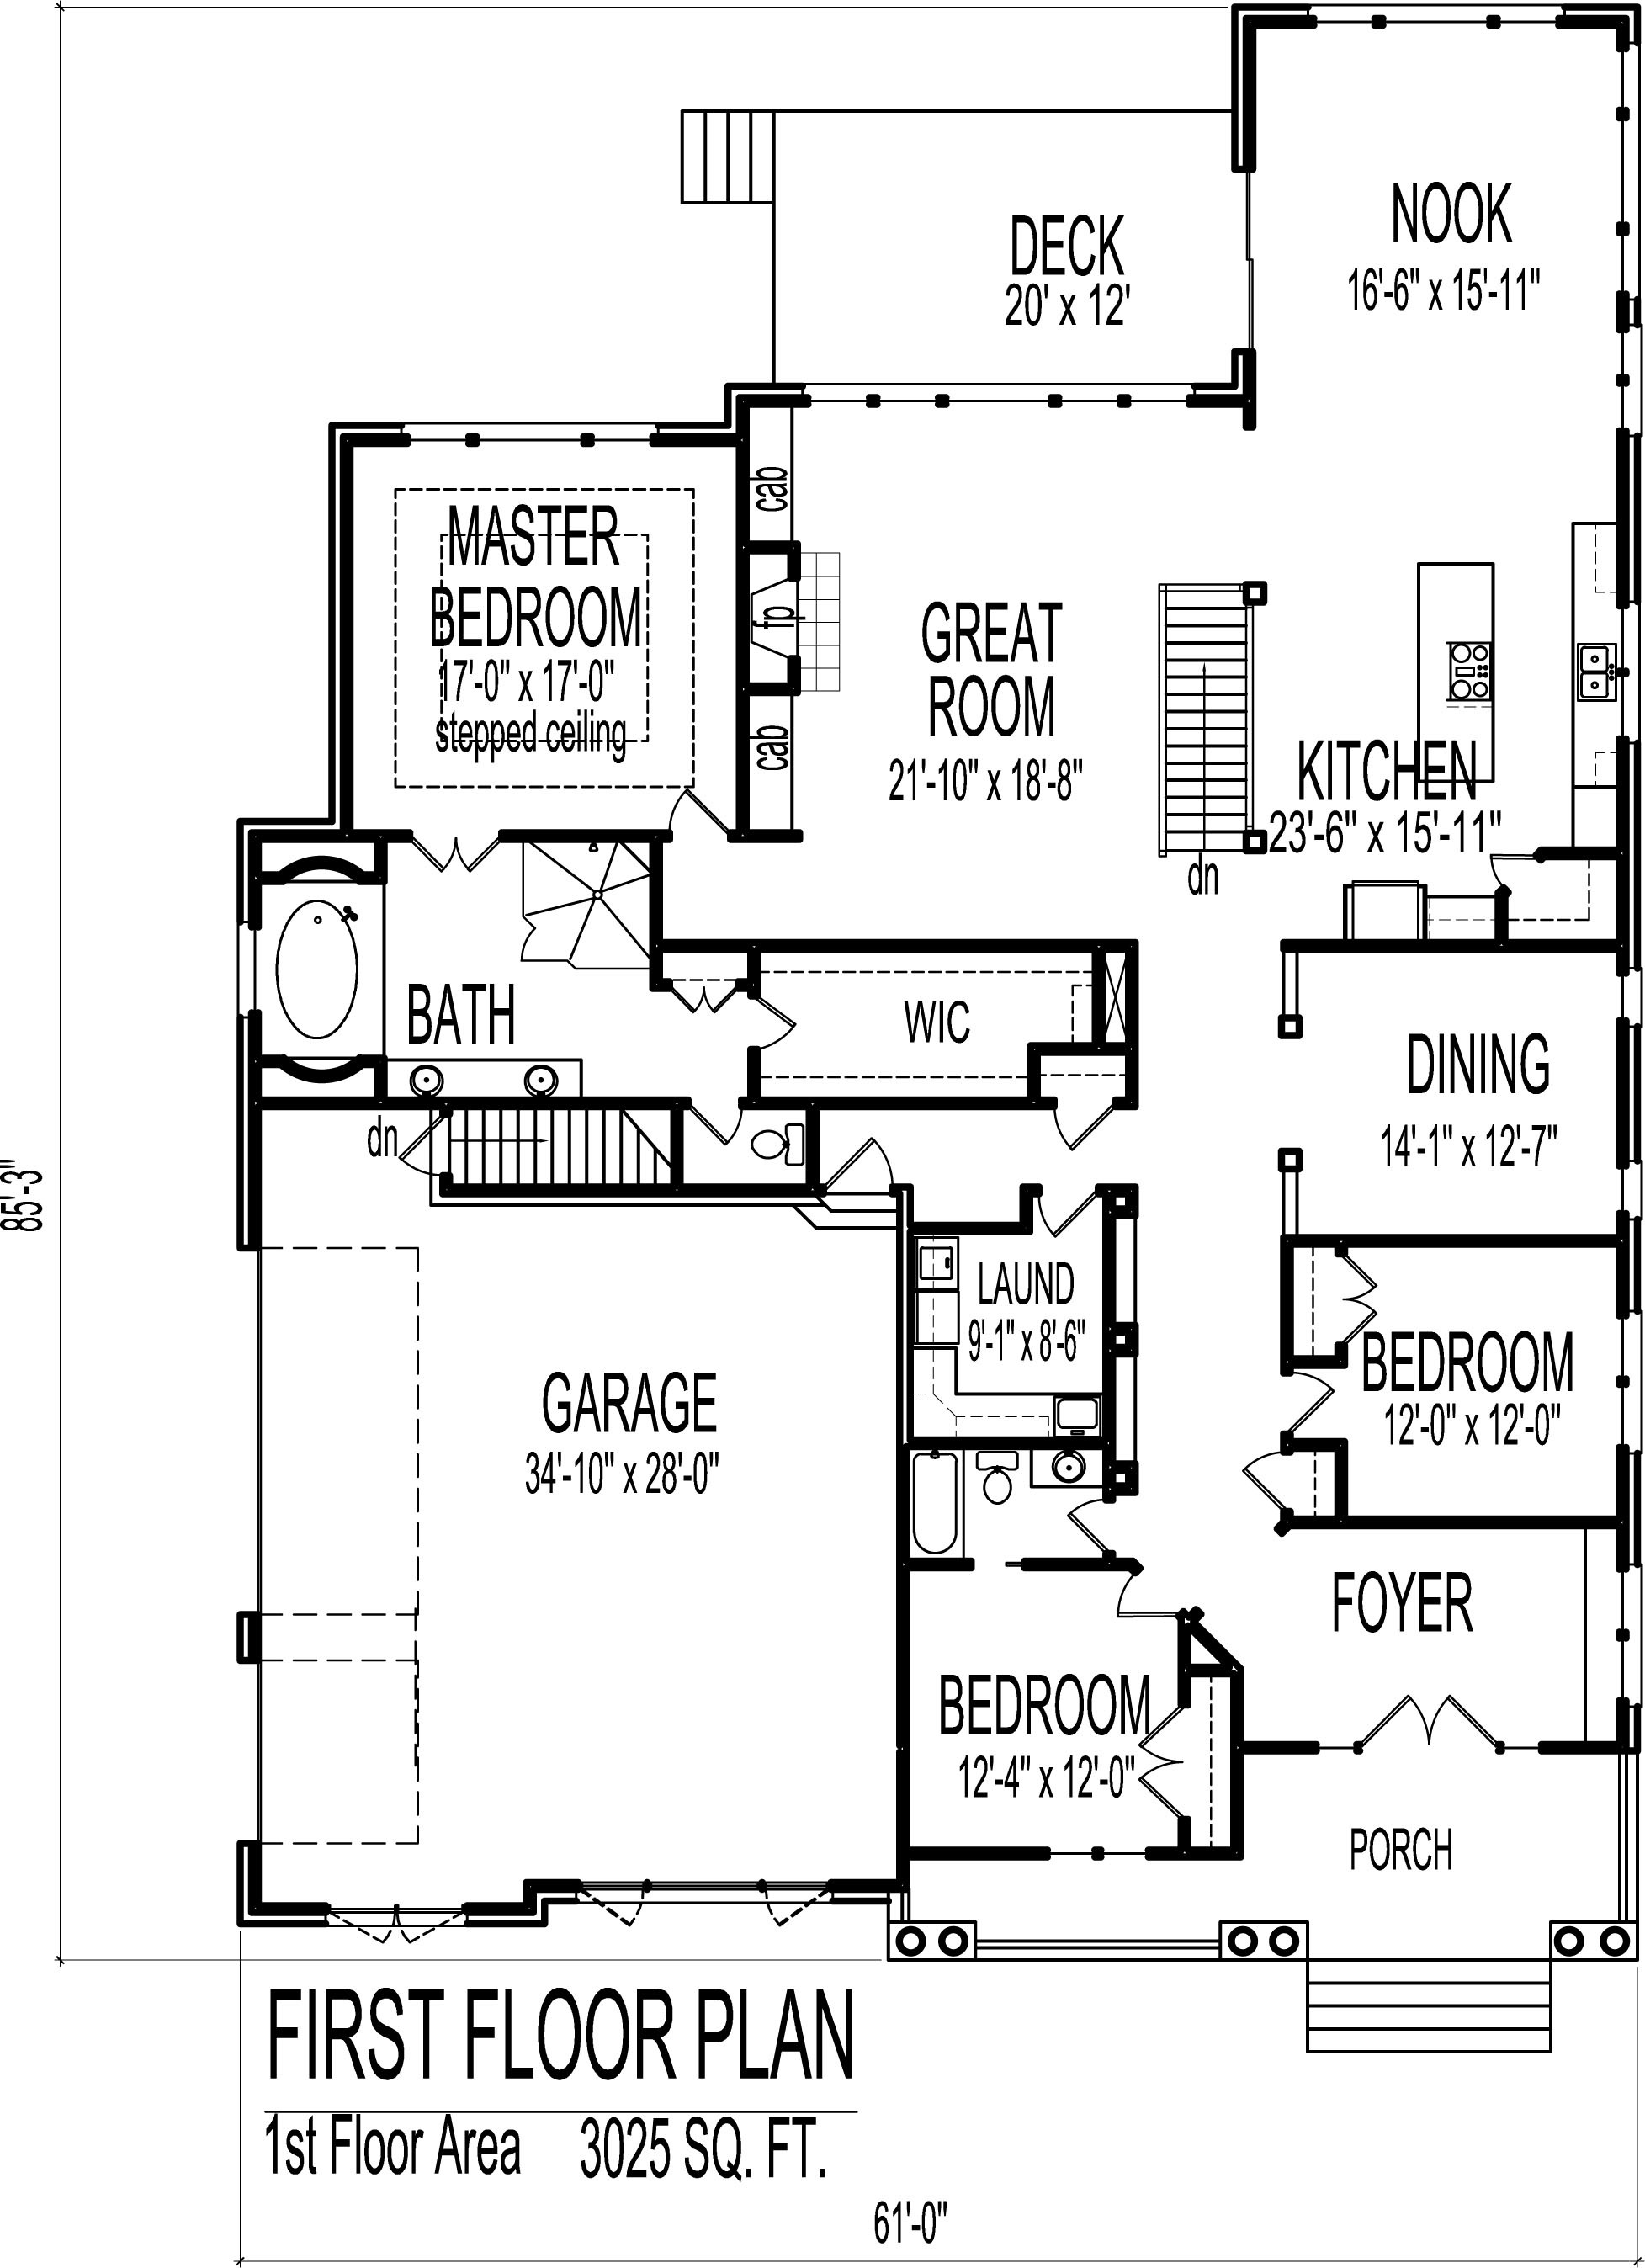 House Plans software Free Download Best Of House Site Plan Drawing at Getdrawings